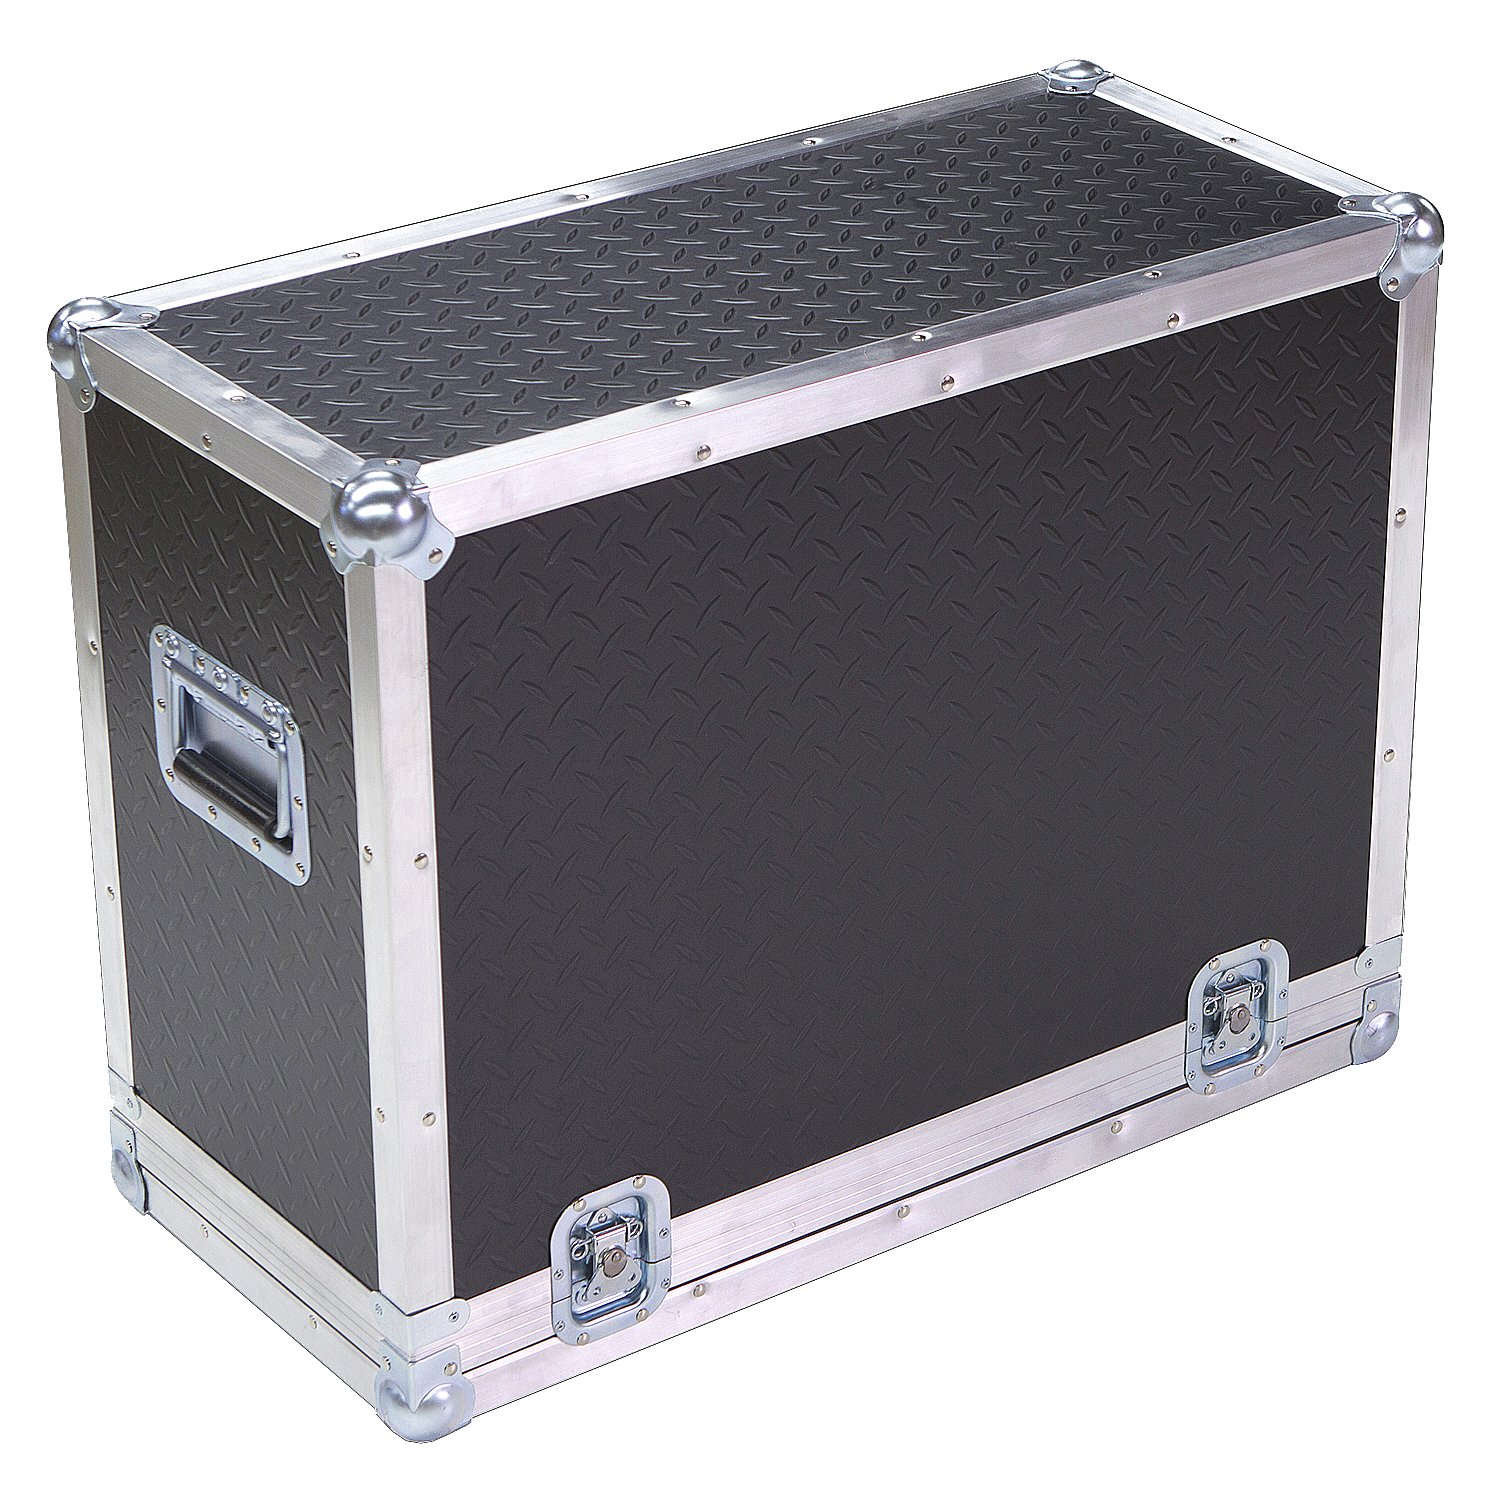 amplifier-14-ply-ata-light-duty-case-with-diamond-plate-laminate-fits-gallien-krueger-neo-700-112